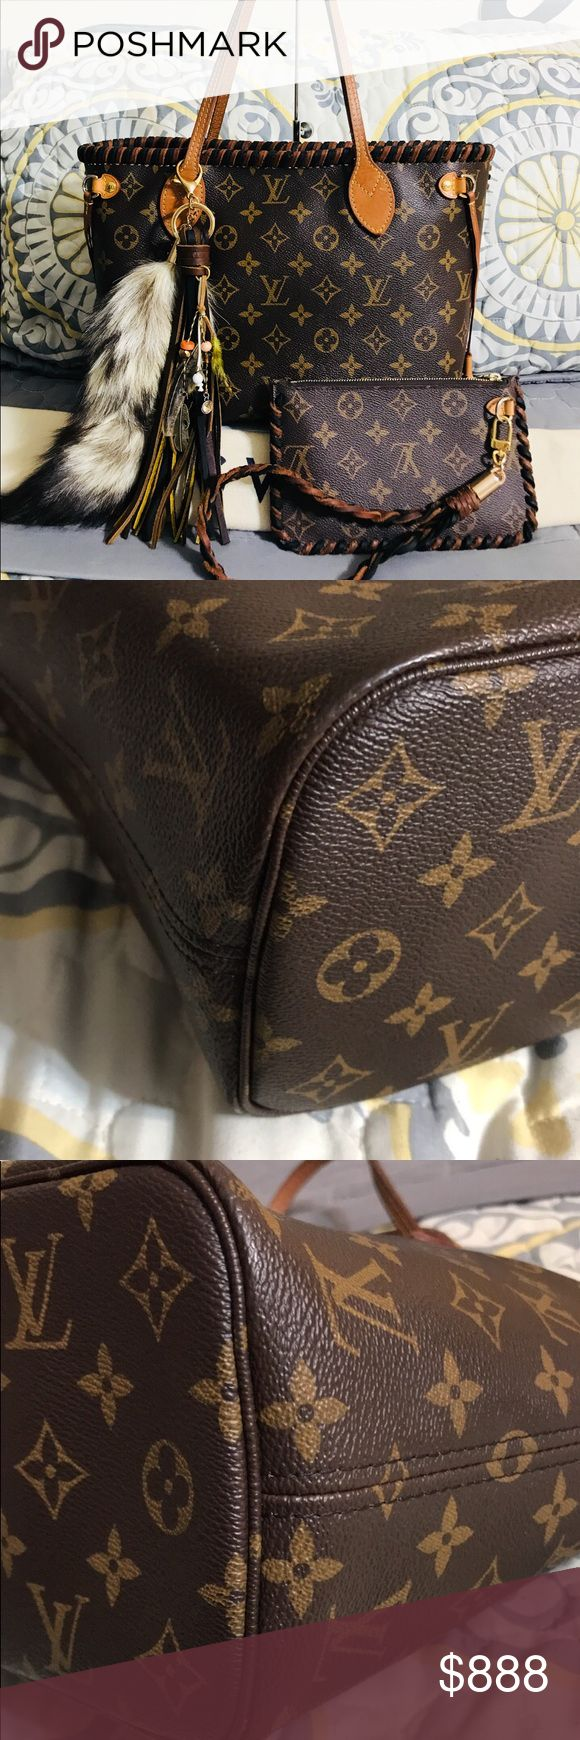 Louis Vuitton Neverfull PM tote & Pochette wrist 💞Louis Vuitton Neverfull PM & Pochette💞 Authentic!! REHABBED BY ME! No cracks  Inside has some stains Side straps on both sides a separating(still work fine)  Pochette has a lipgloss stain inside(pic)  Bag, Pochette and custom tassel included. Louis Vuitton Bags Totes